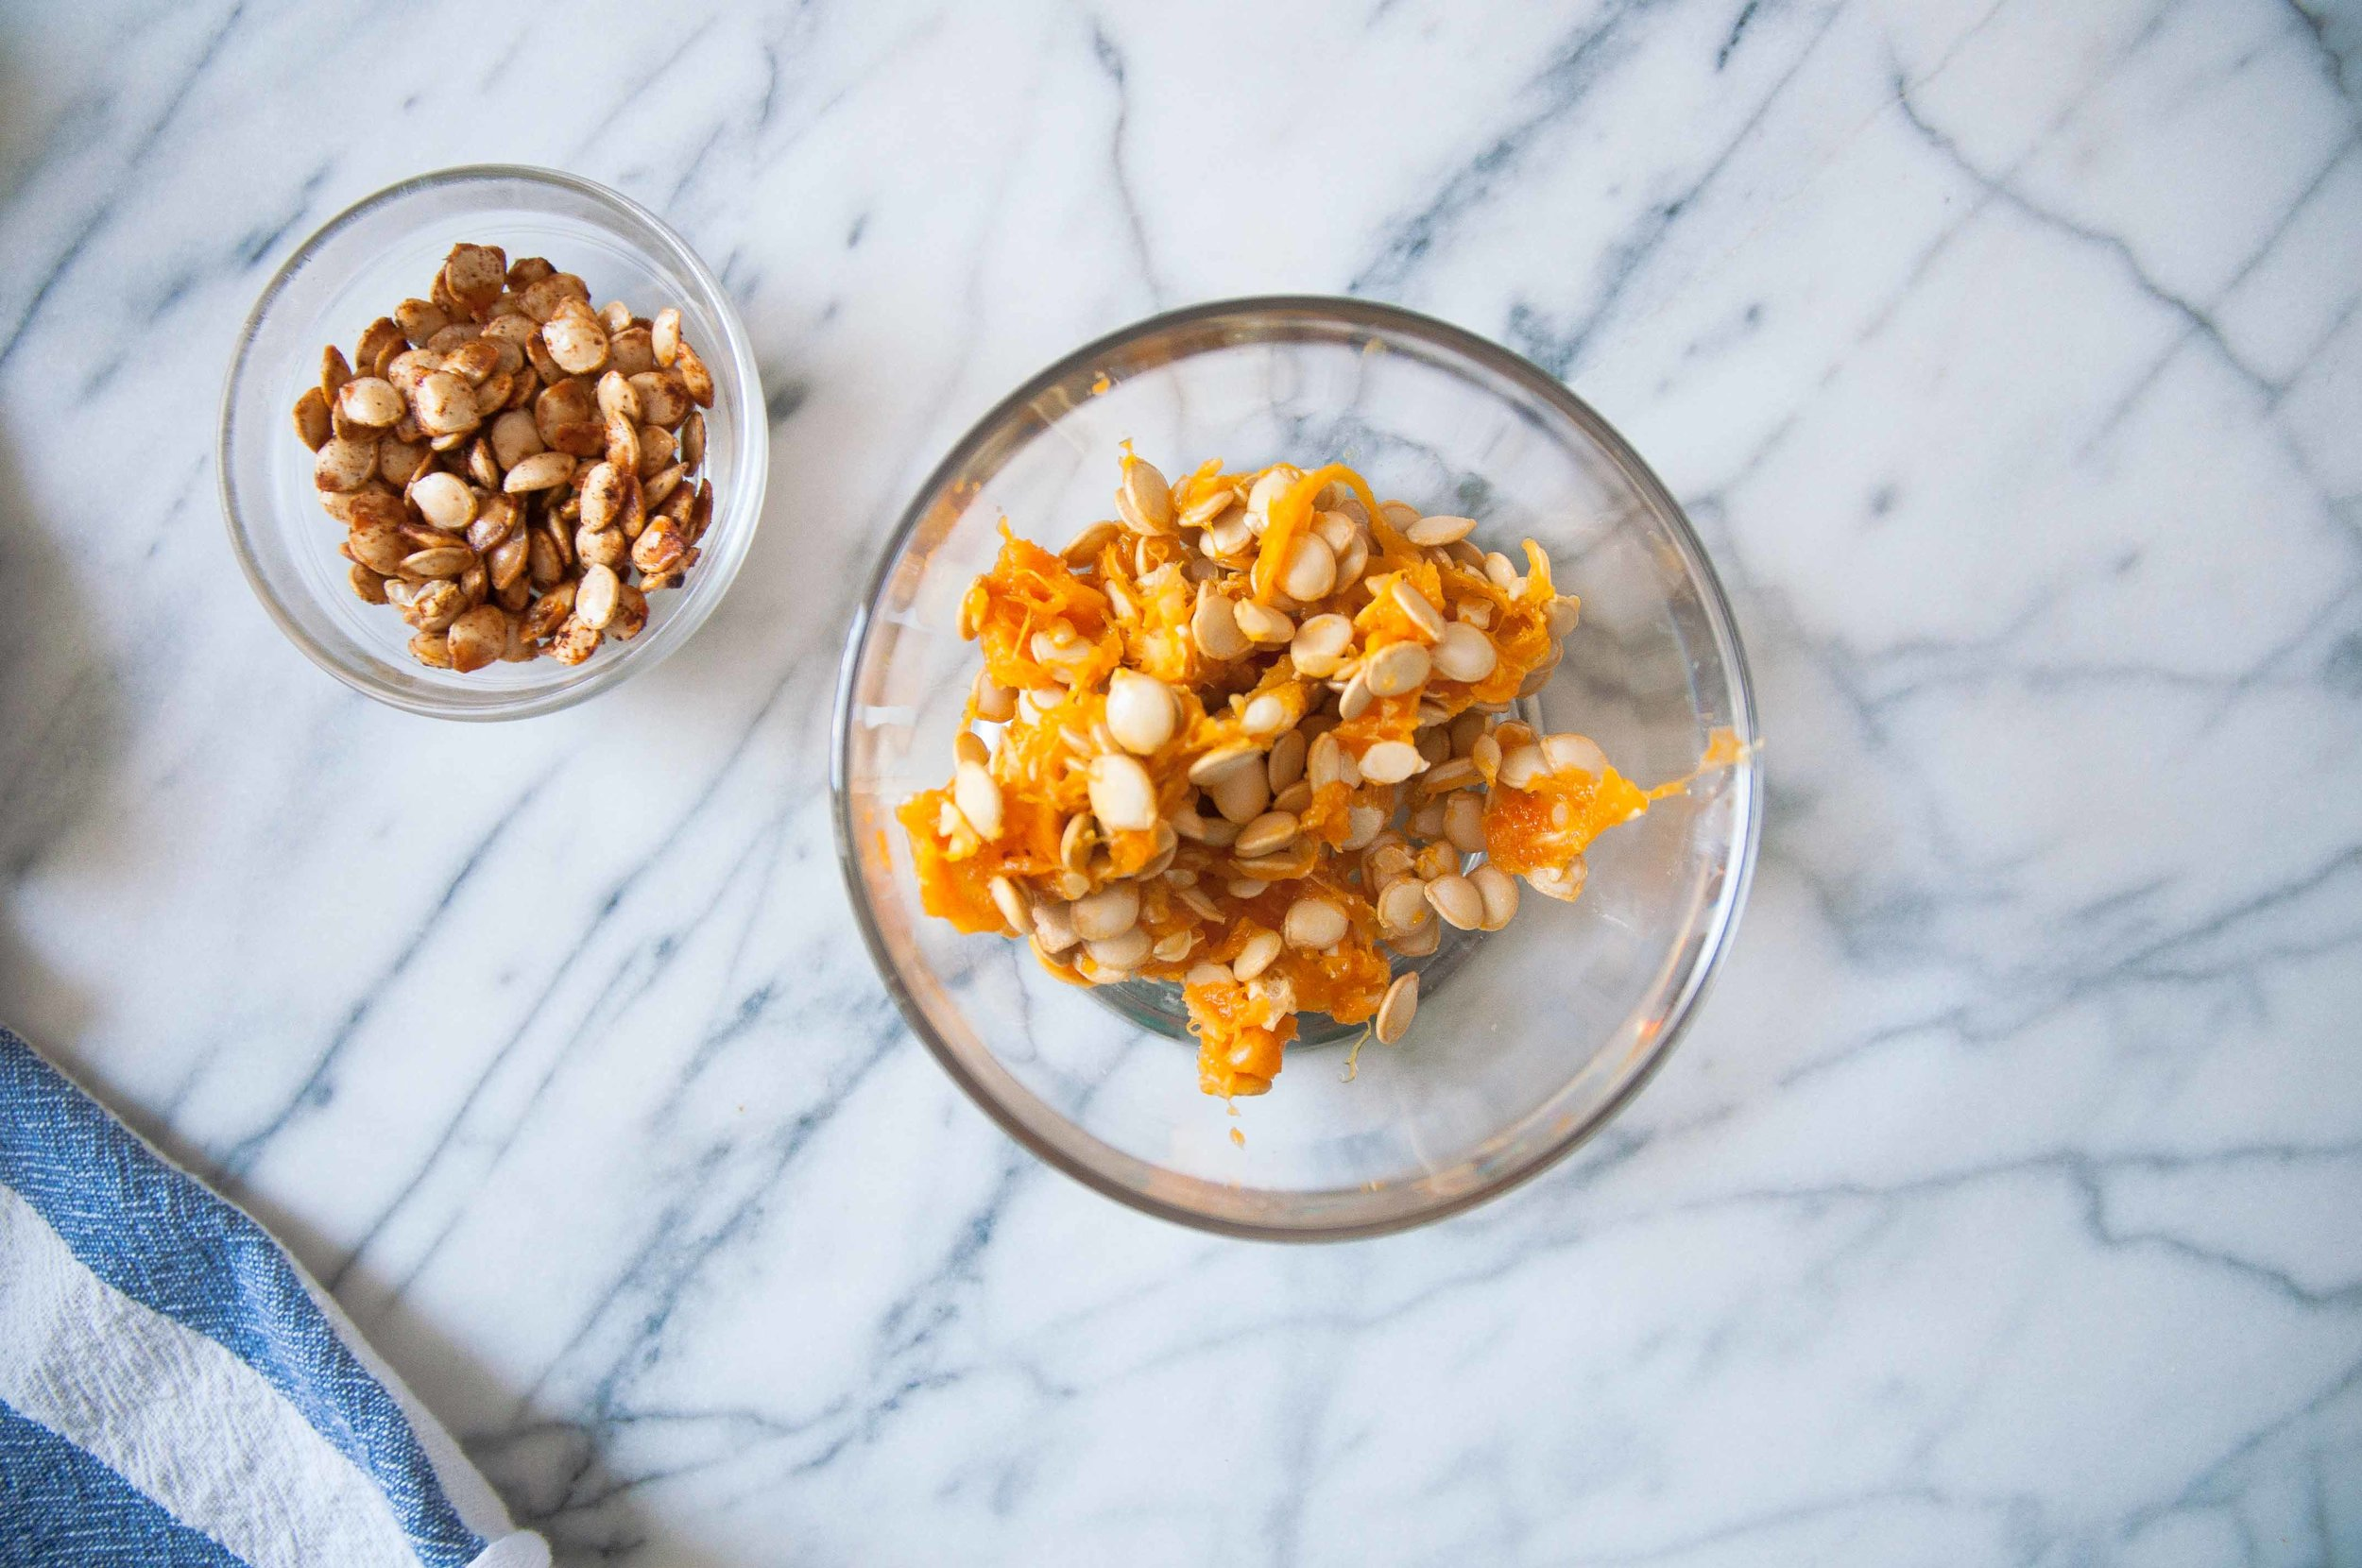 Don't throw away squash seeds! Roast + use in the salad :)